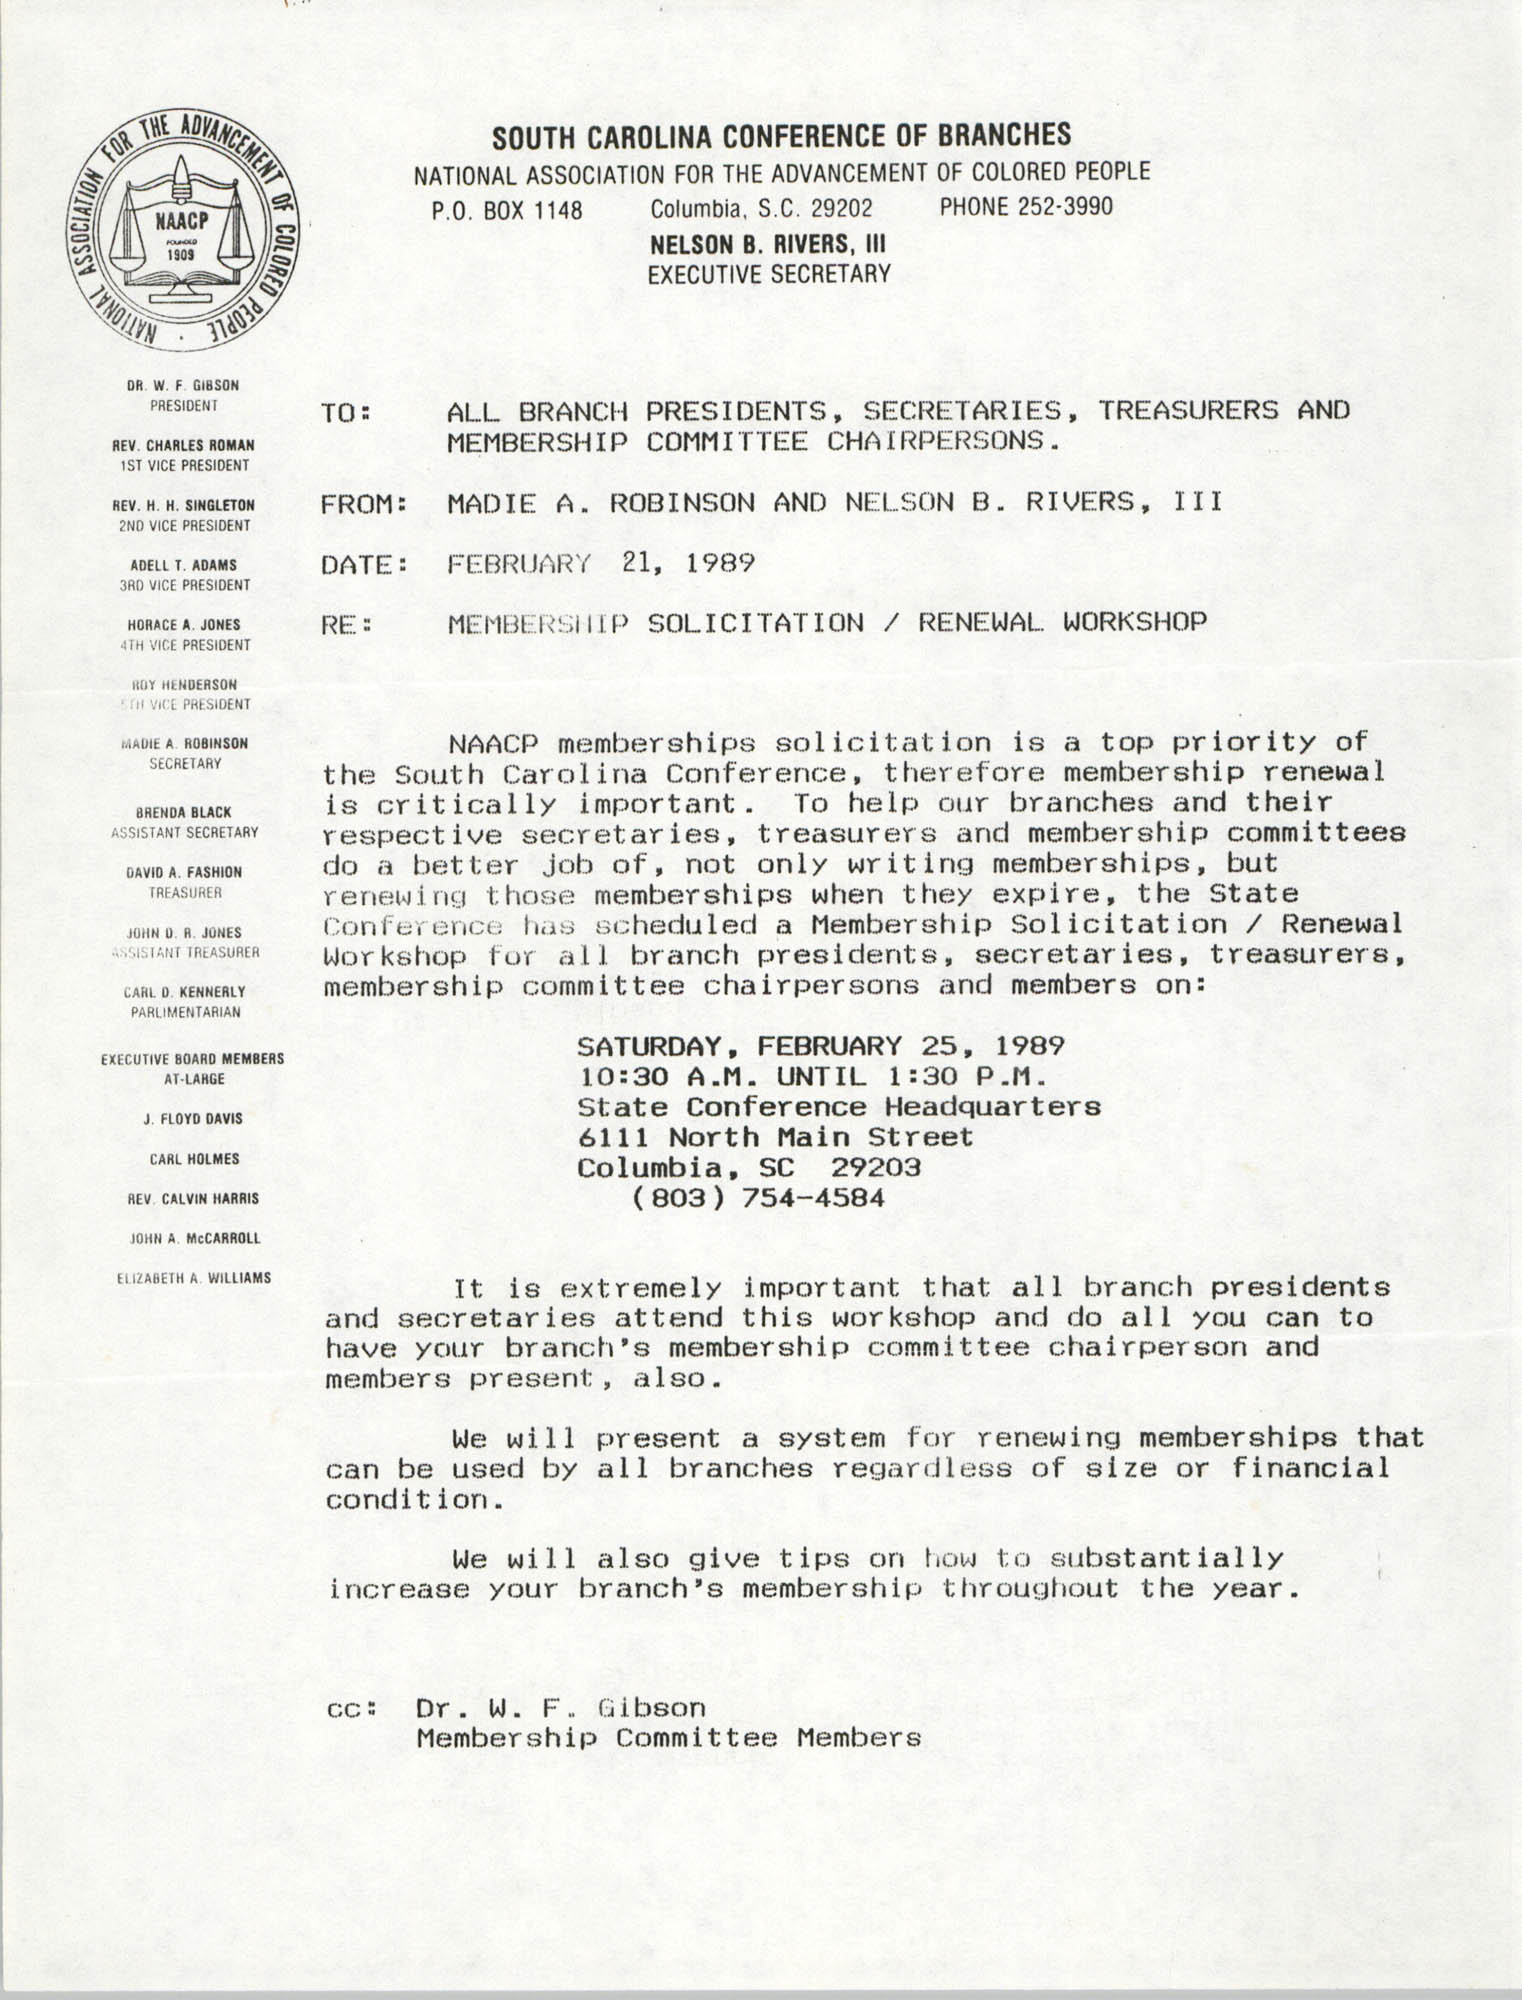 South Carolina Conference of Branches of the NAACP Memorandum, February 21, 1989